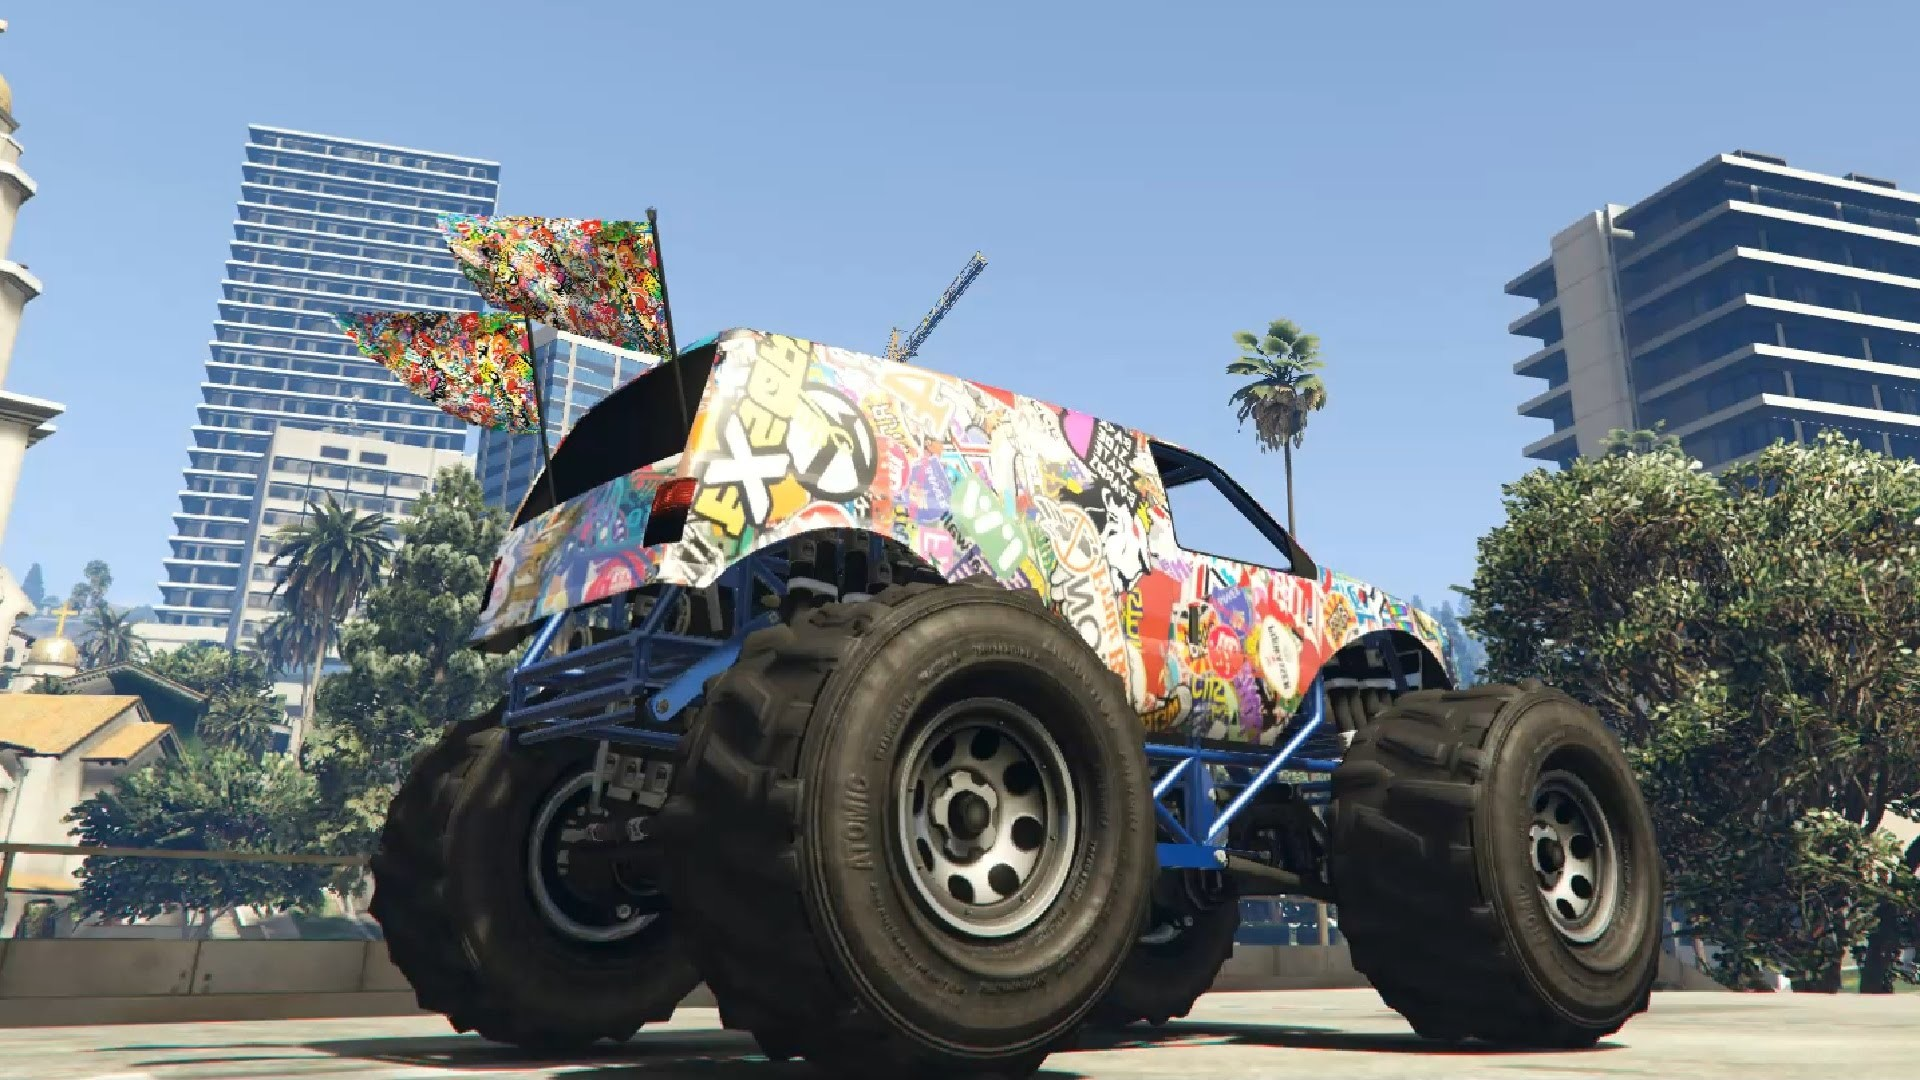 1920x1080 GTA V - Sticker Bomb Liberator 2 0f HD Update